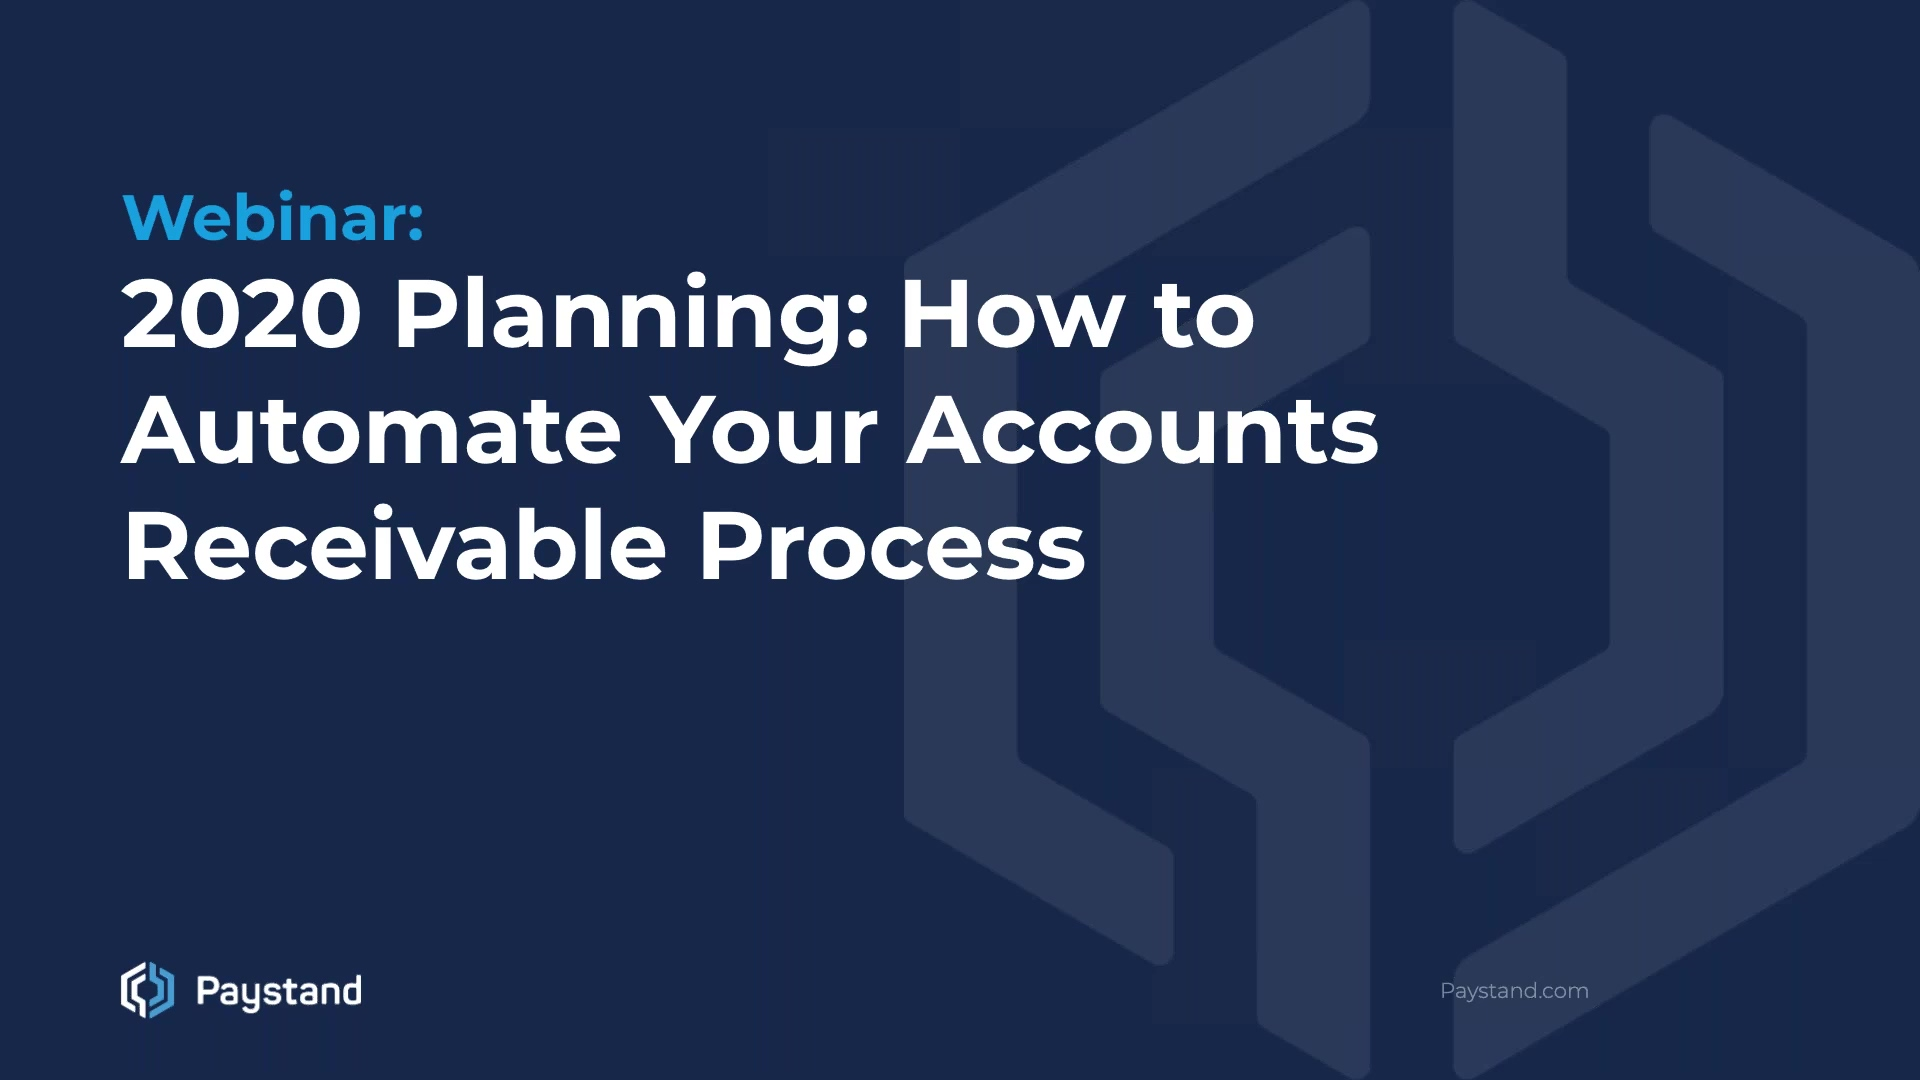 2020 Planning How to Automate Your Accounts Receivable Process